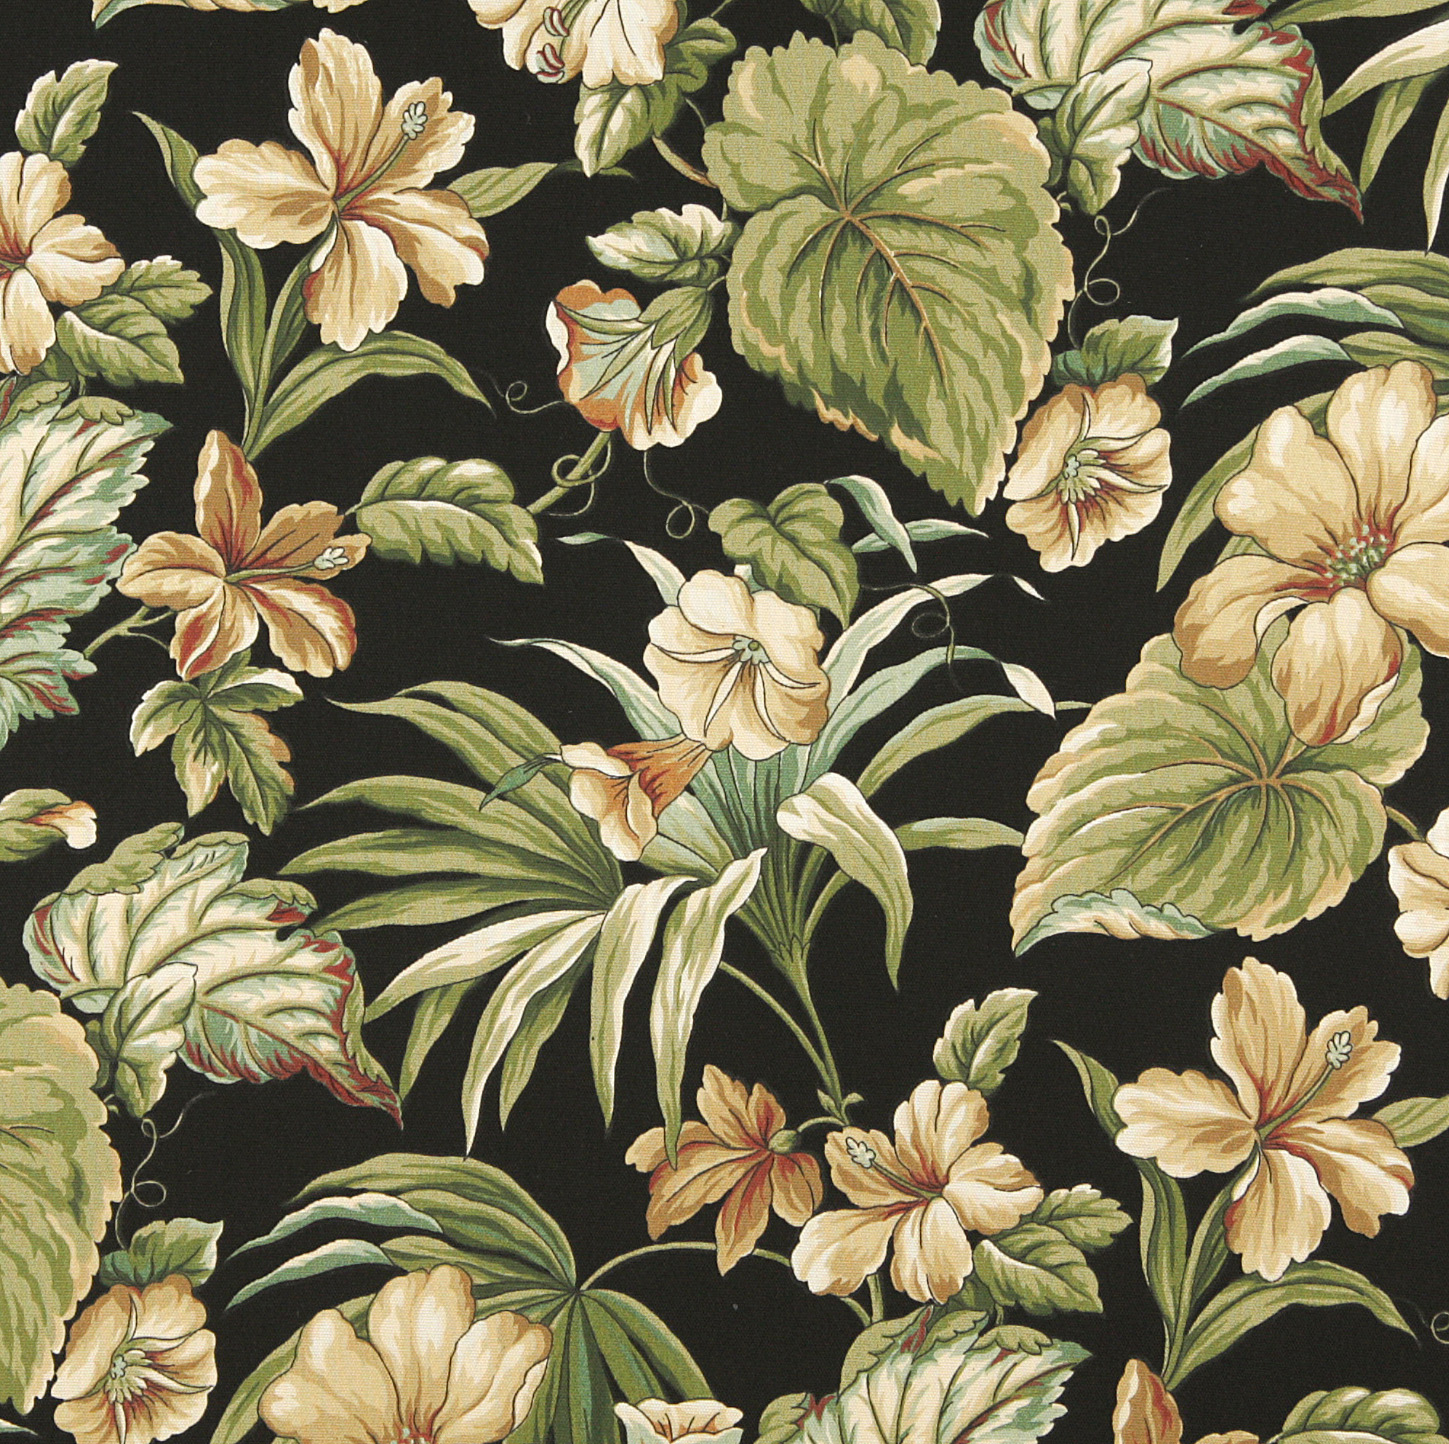 Rio Beige And Black Floral Marine Upholstery Fabric